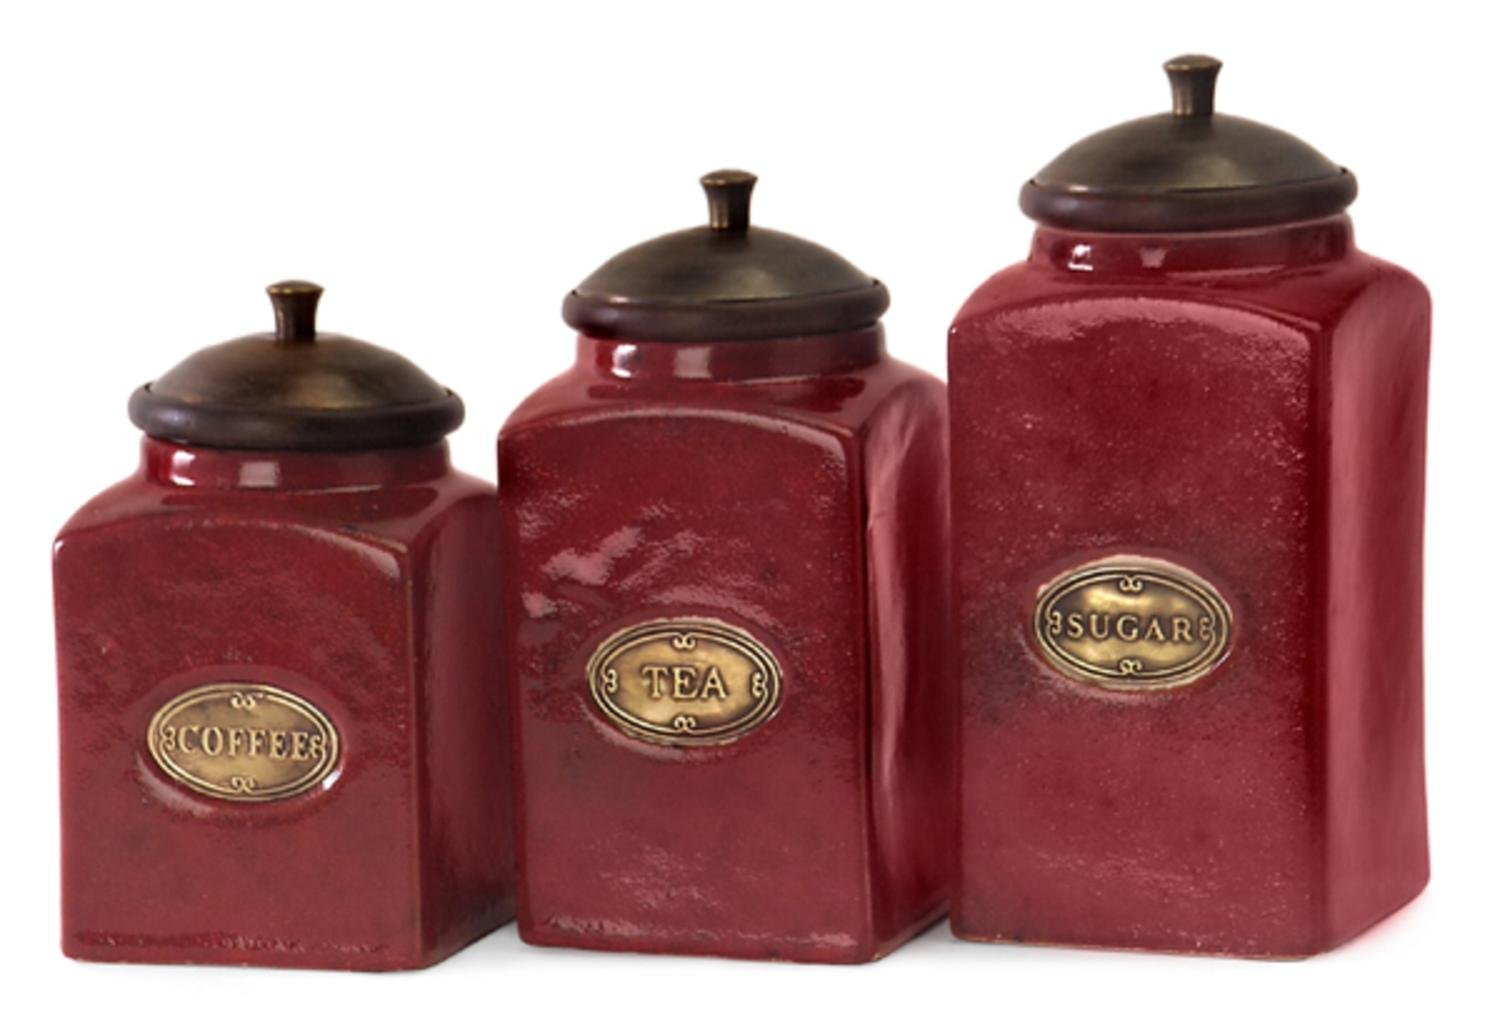 amazon com set of 3 rustic red lidded ceramic kitchen canisters amazon com set of 3 rustic red lidded ceramic kitchen canisters kitchen dining